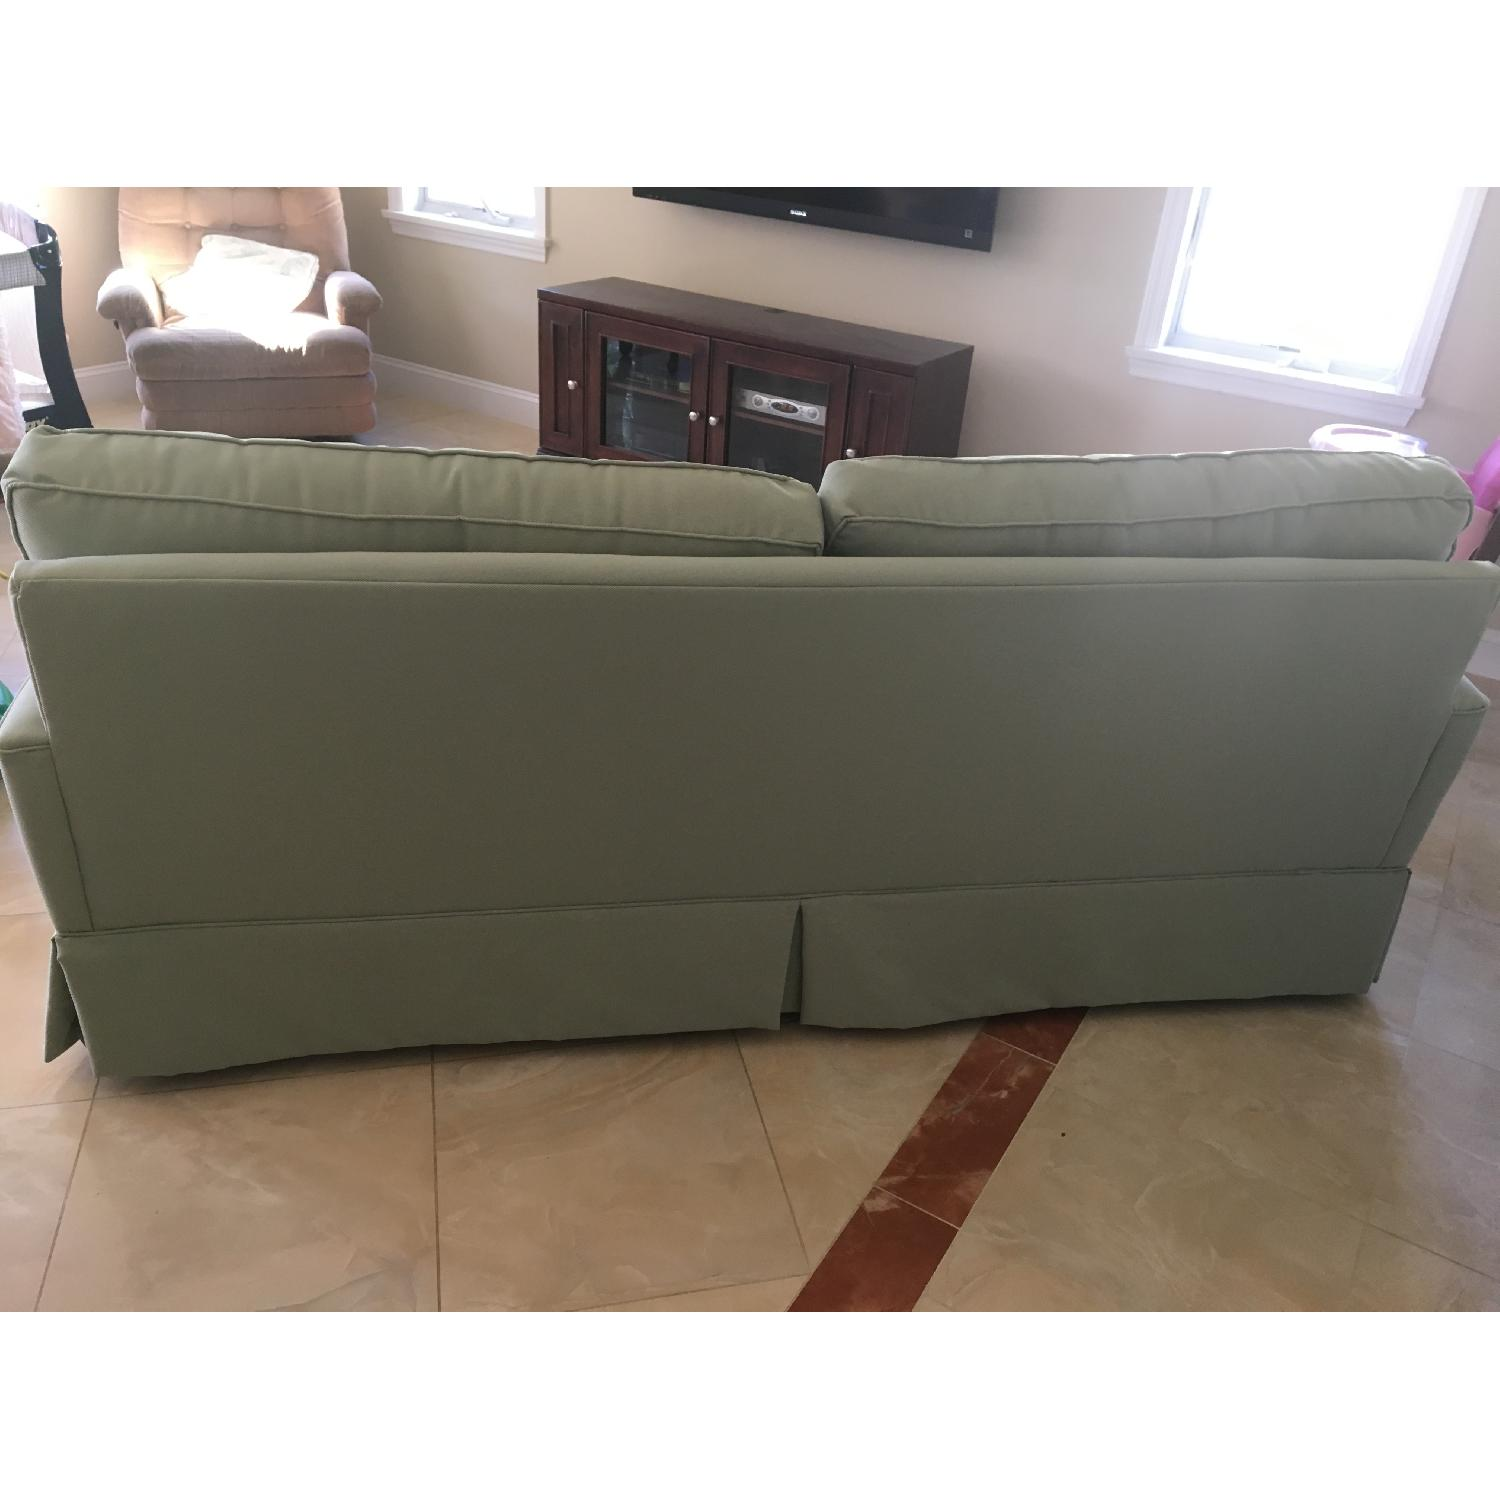 Raymour & Flanigan Sage Color Couch - image-4